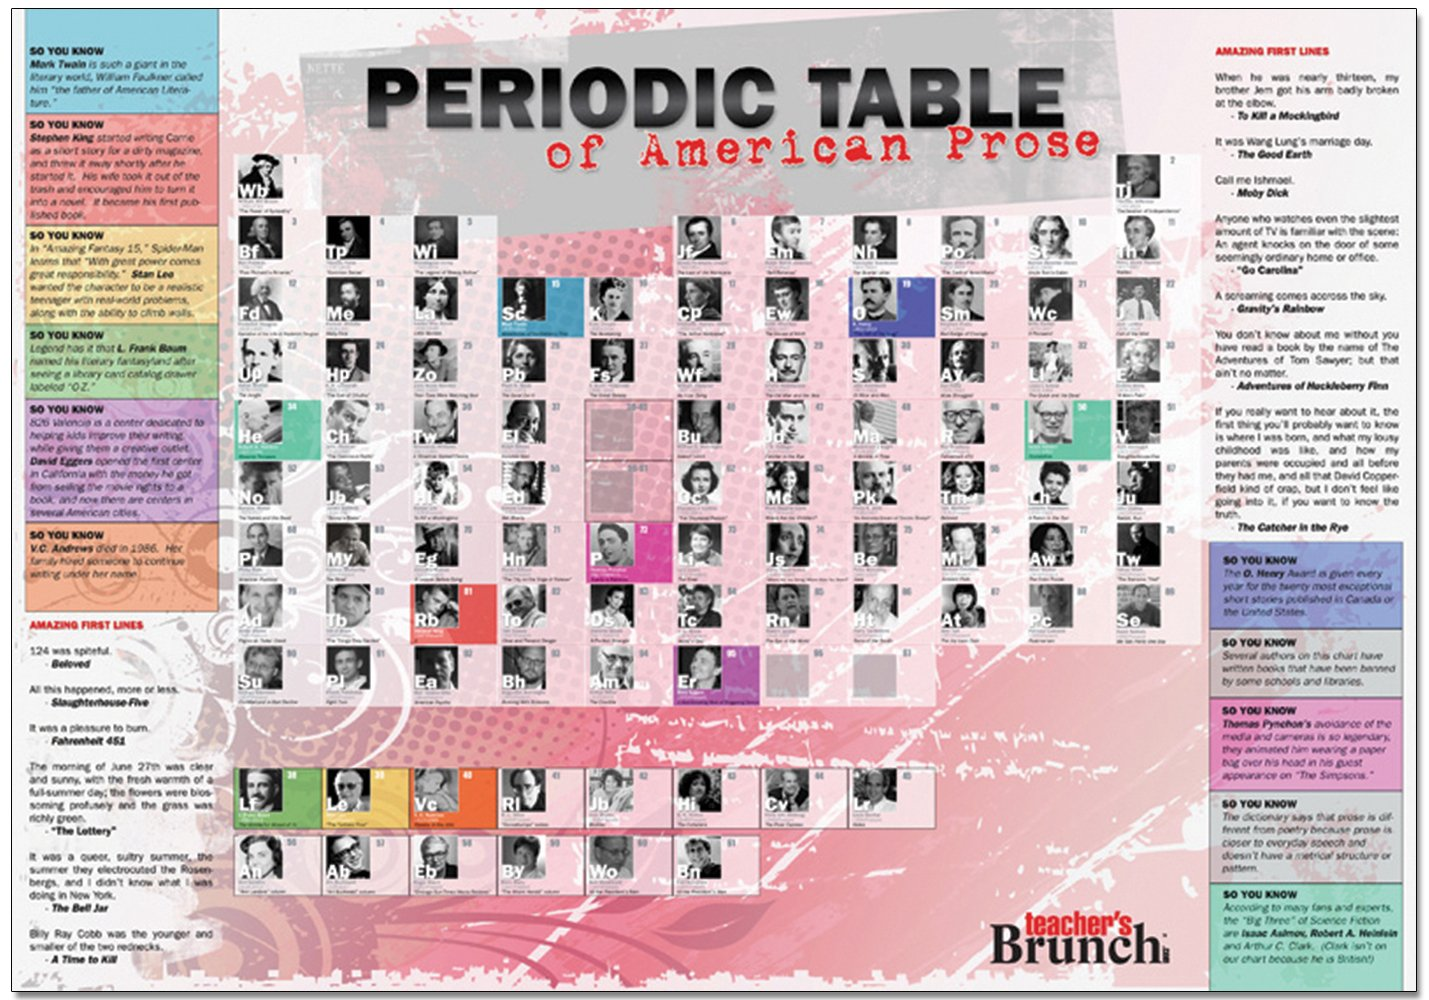 Amazon periodic table of american prose educational laminated amazon periodic table of american prose educational laminated poster english literature art print home kitchen gamestrikefo Image collections